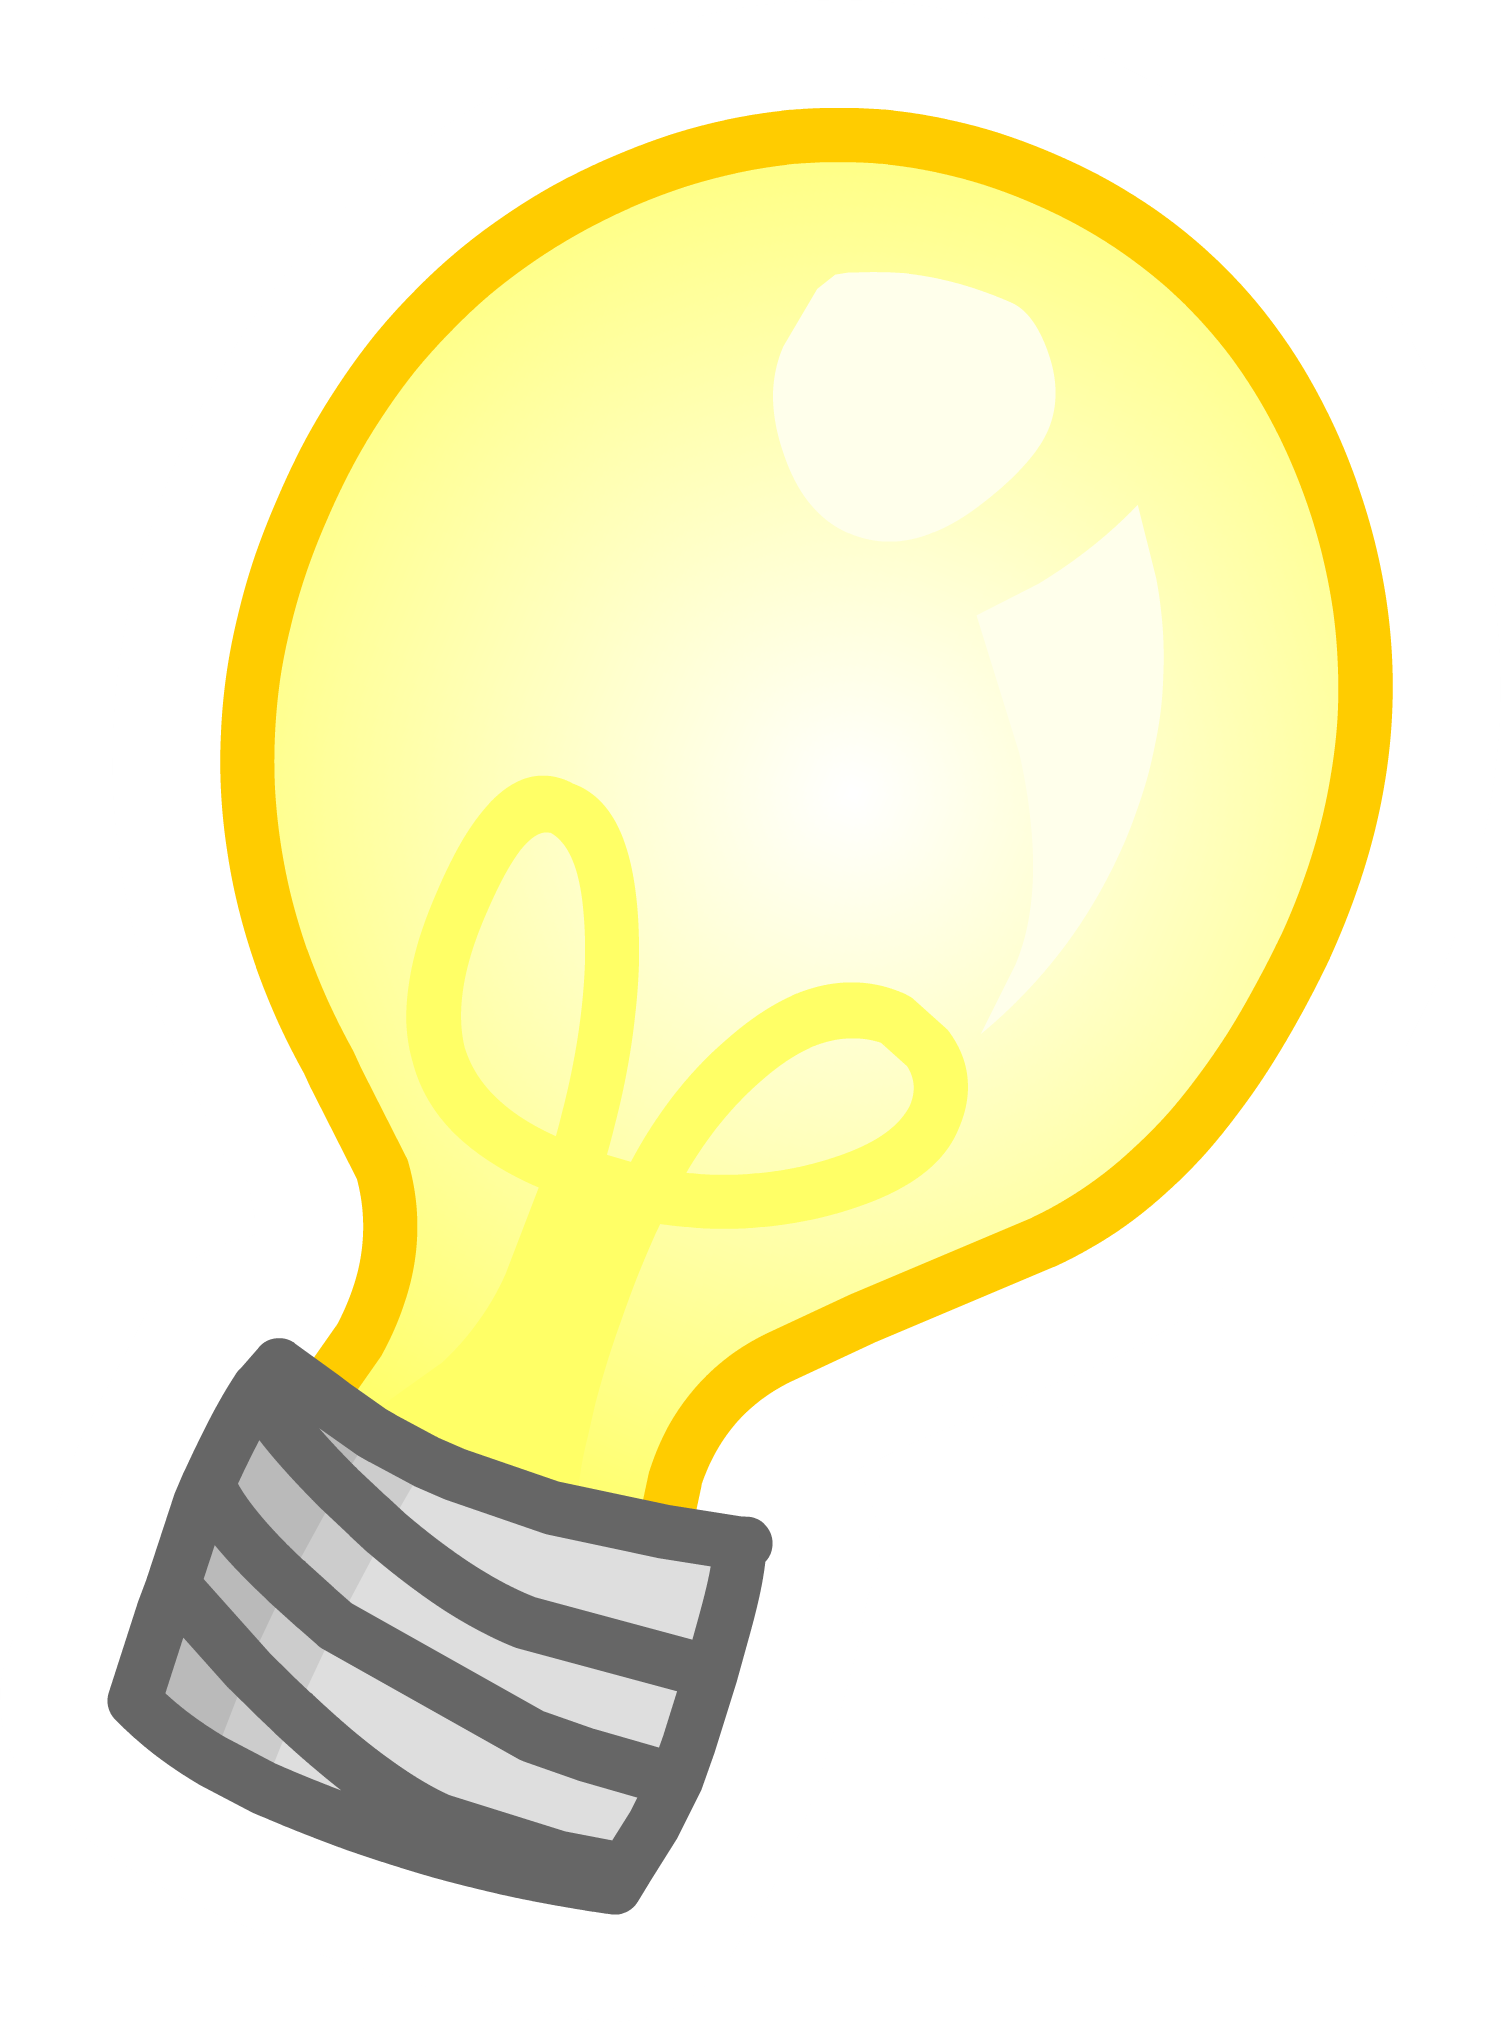 Electrical clipart yellow light bulb. Png images free icons